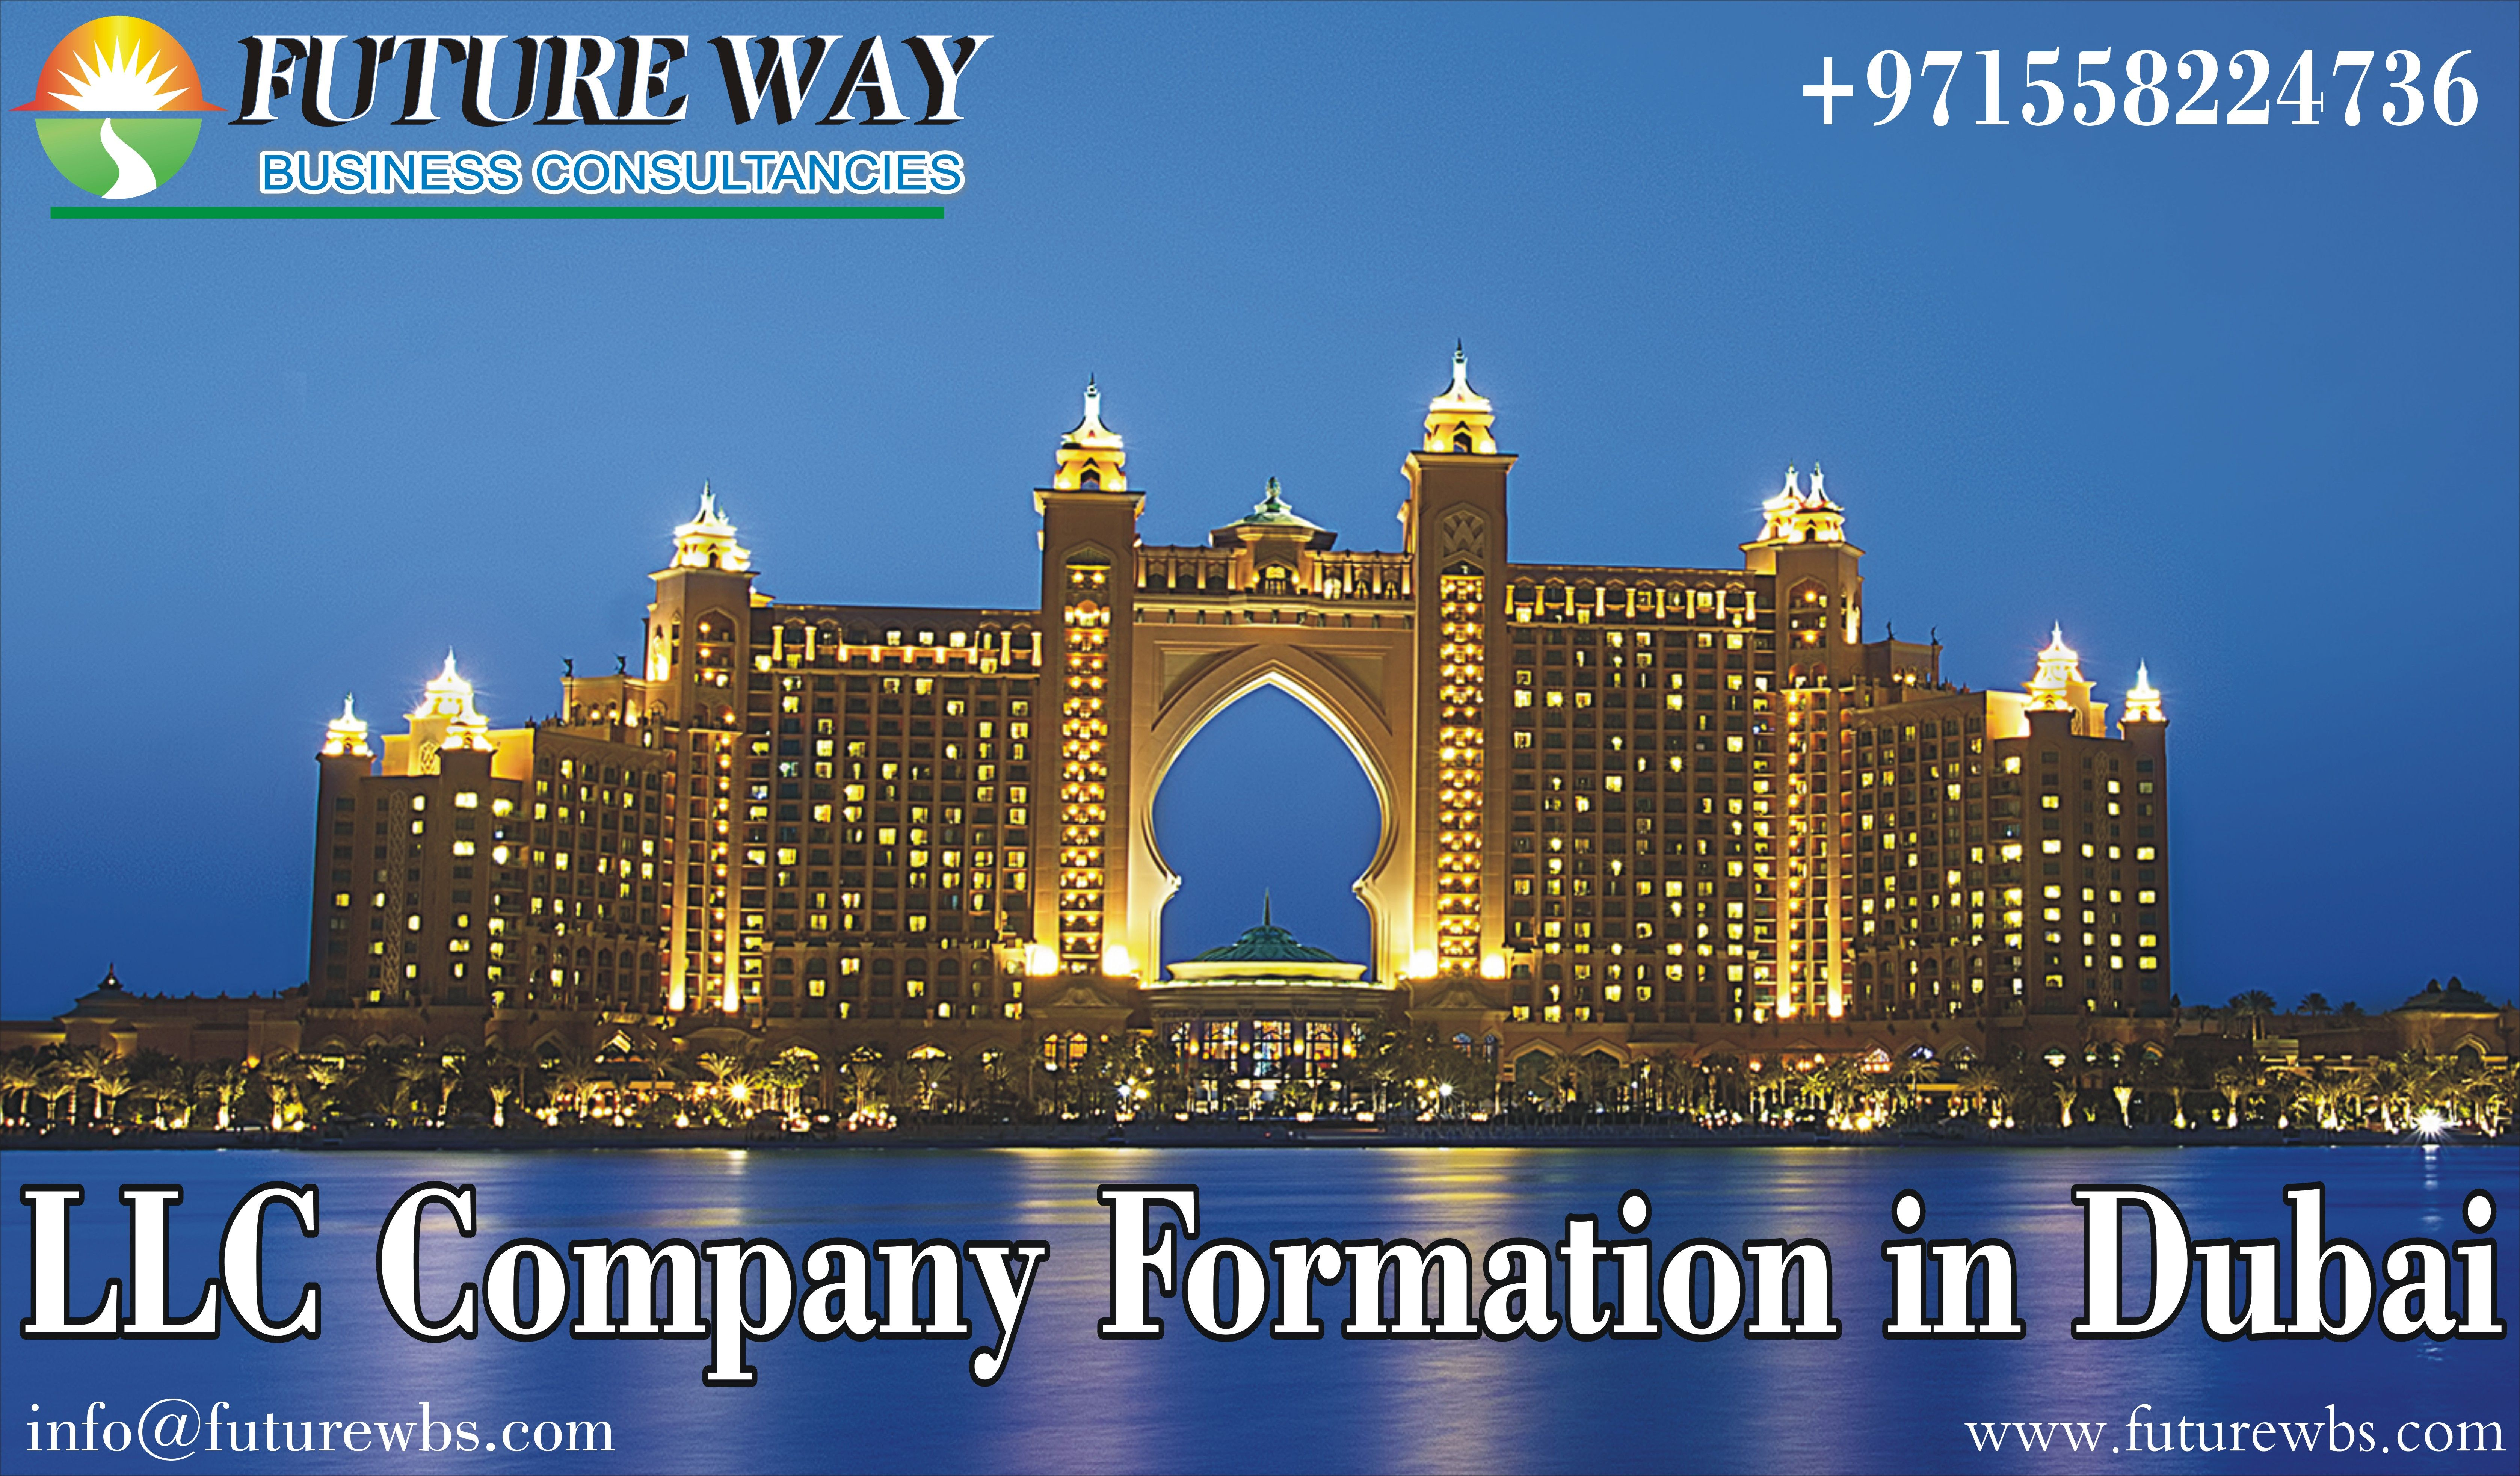 Setup your own business in Dubai. For new trade license